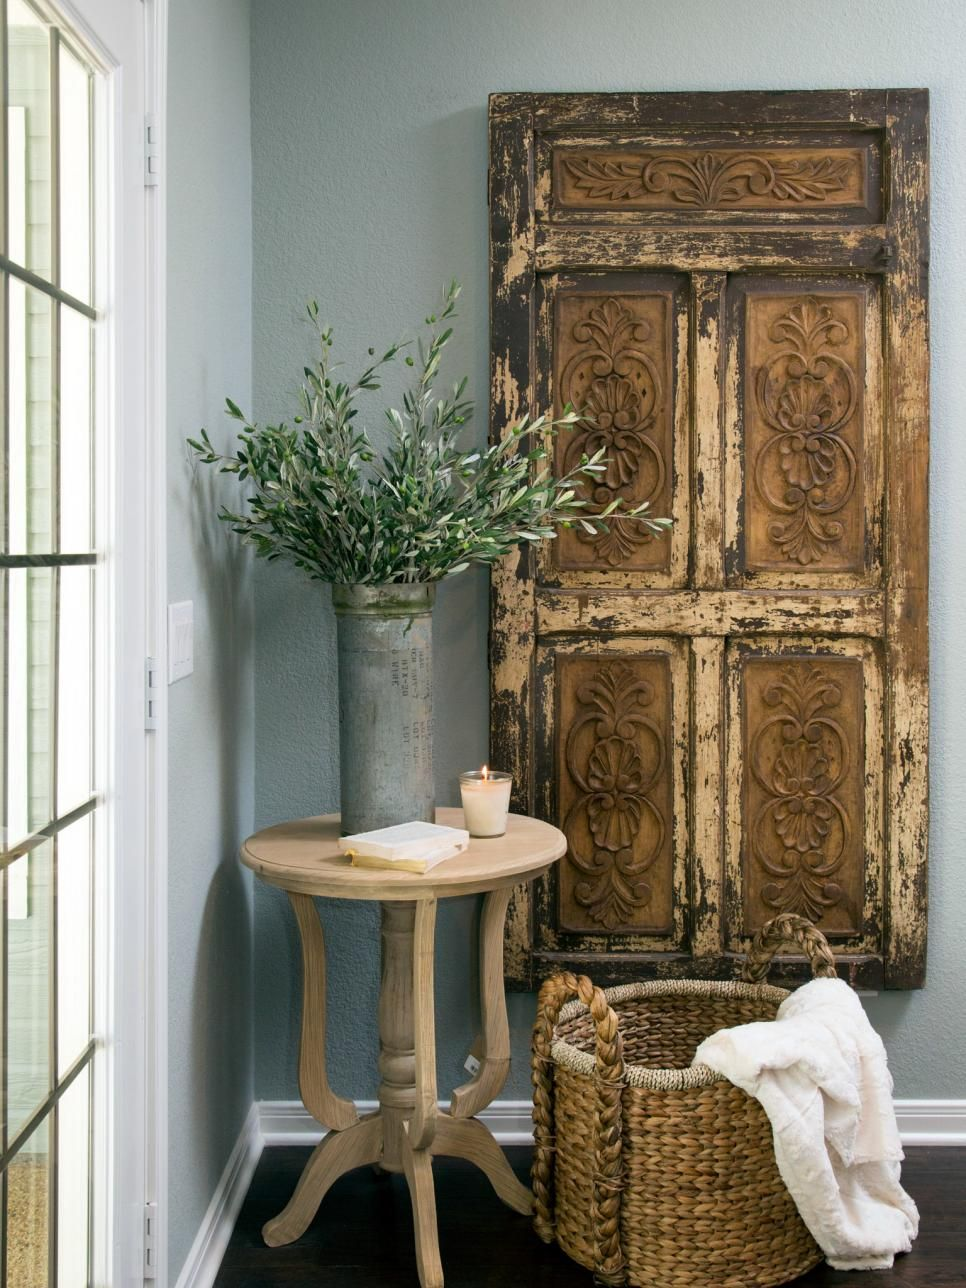 Wall Art Ideas From Chip And Joanna Gaines Decorative Styles